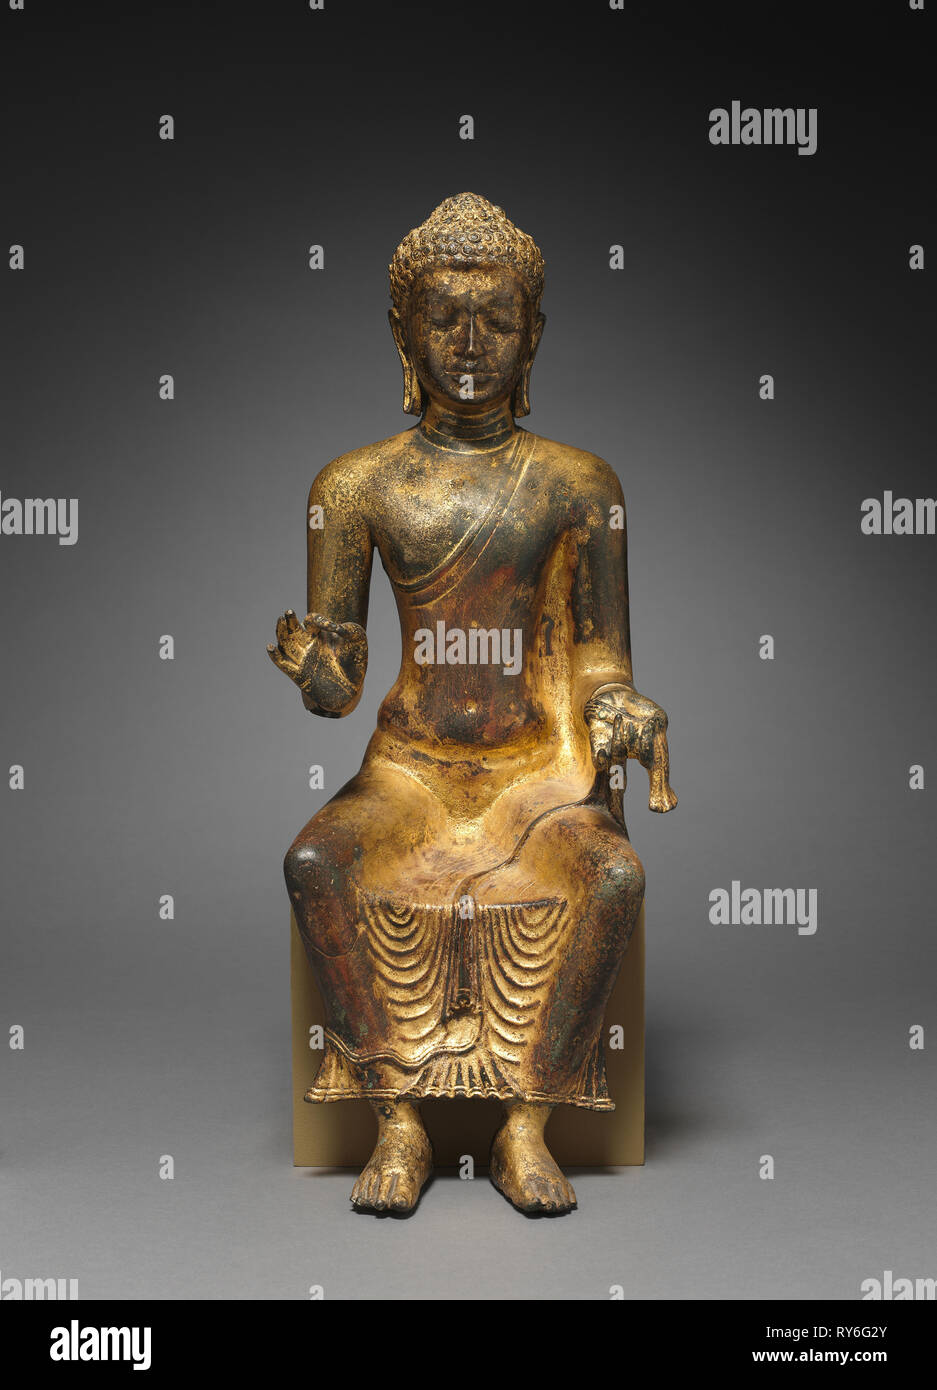 Enthroned Buddha preaching, 700s-800s. Myanmar or Thailand, 8th-9th century. Copper alloy with gilding - Stock Image